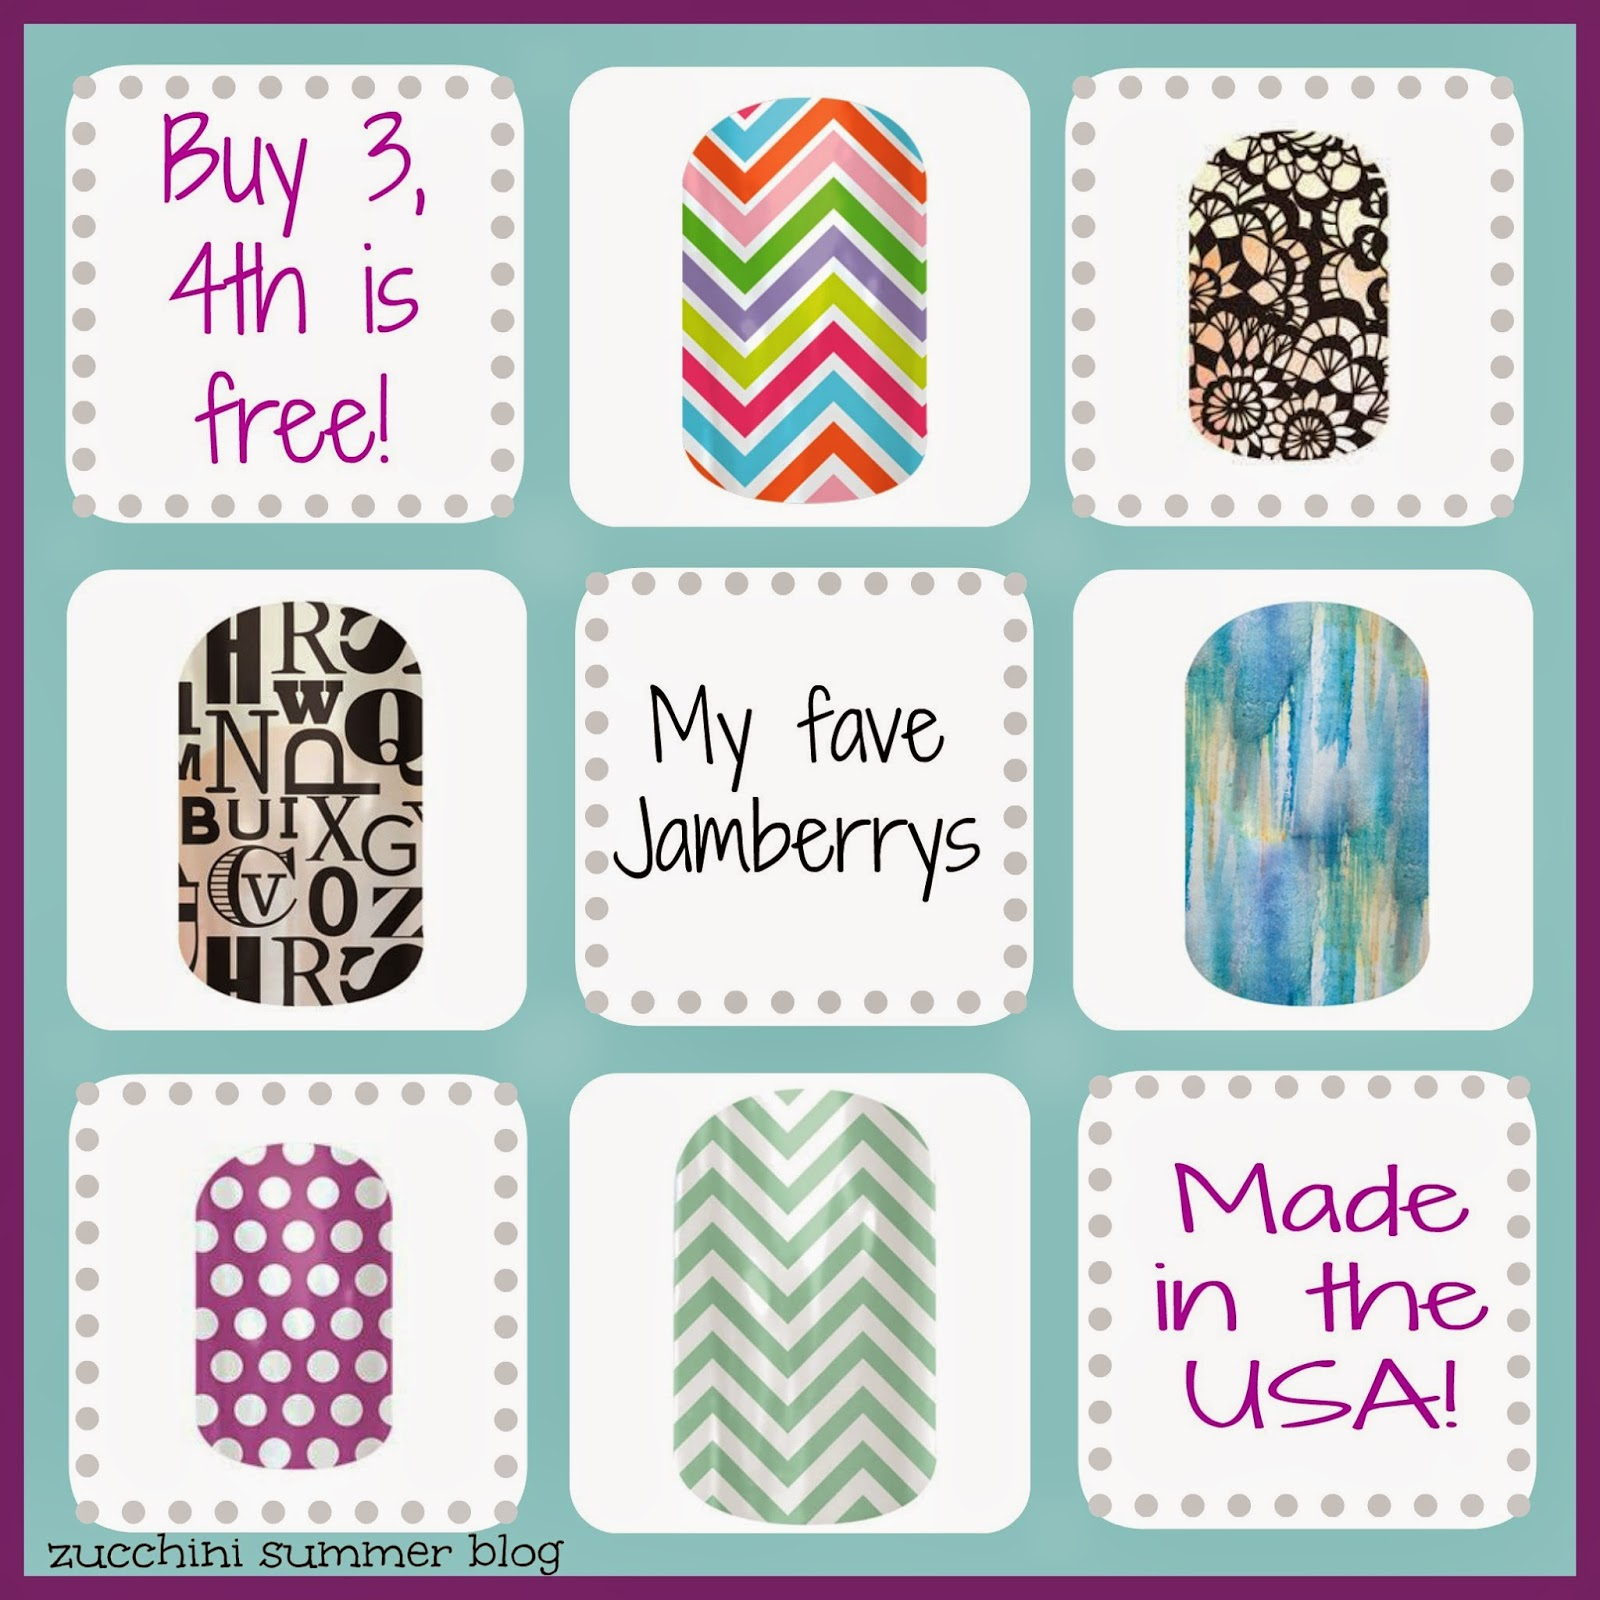 jamberry alphabet, jamberry chevron, jamberry candy chevron, jamberry mint chevron, jamberry polka dot, jamberry alphabet, nail art, nail stickers, nail decals, wedding finger nails, summer pedicure